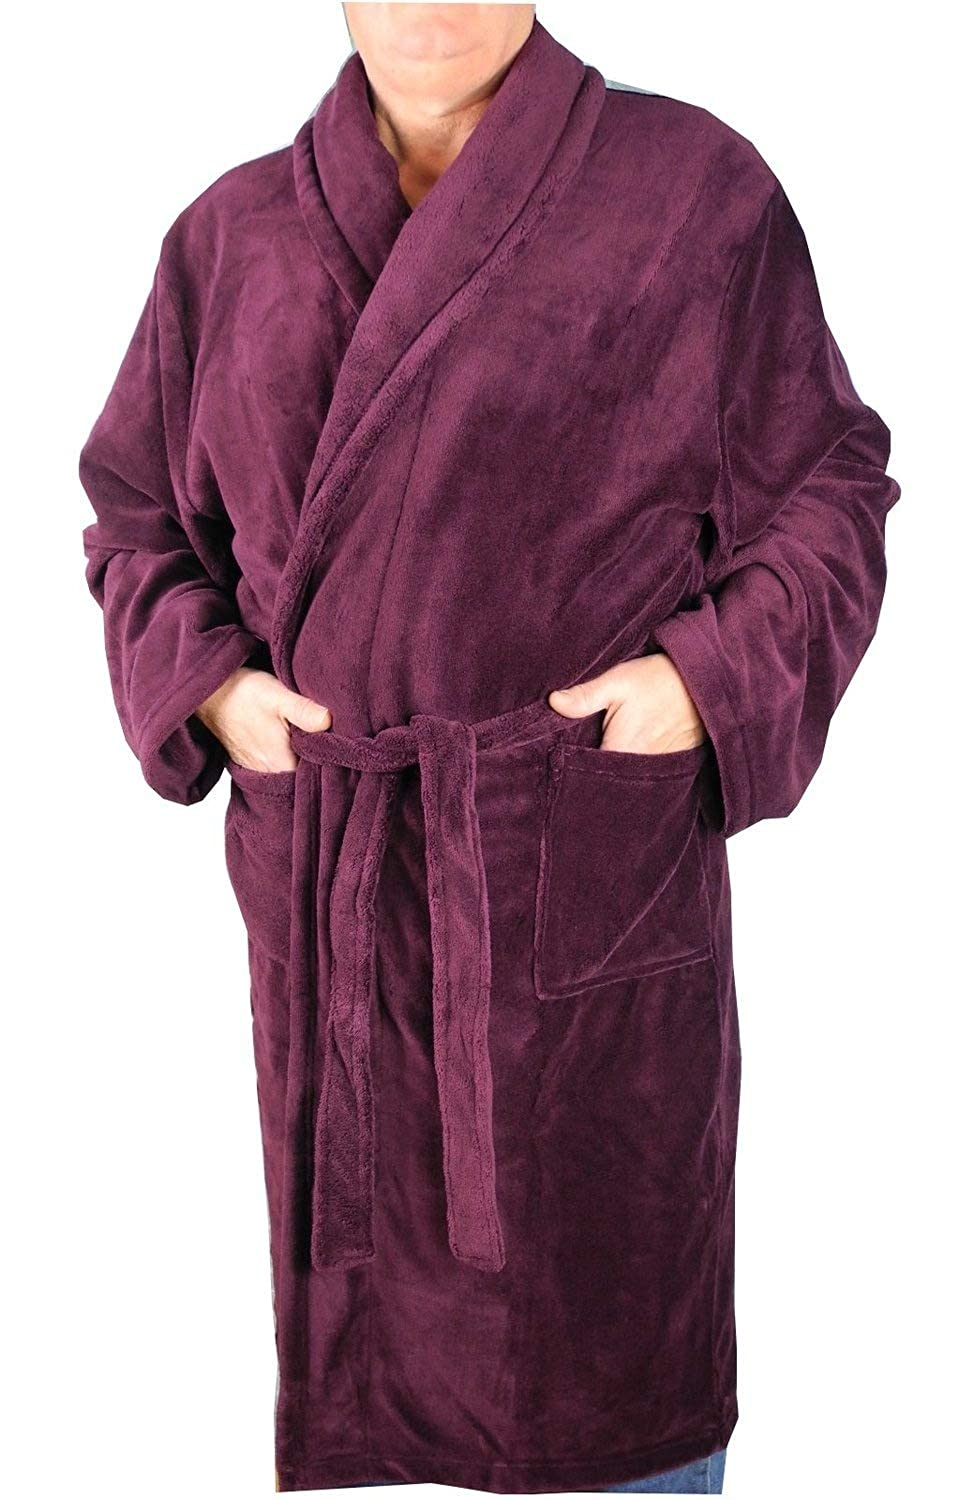 Mens Kingsize Big Size Soft Warm Fleece Dressing Gown Robe Burgundy Size 2XL-8XL Espionage